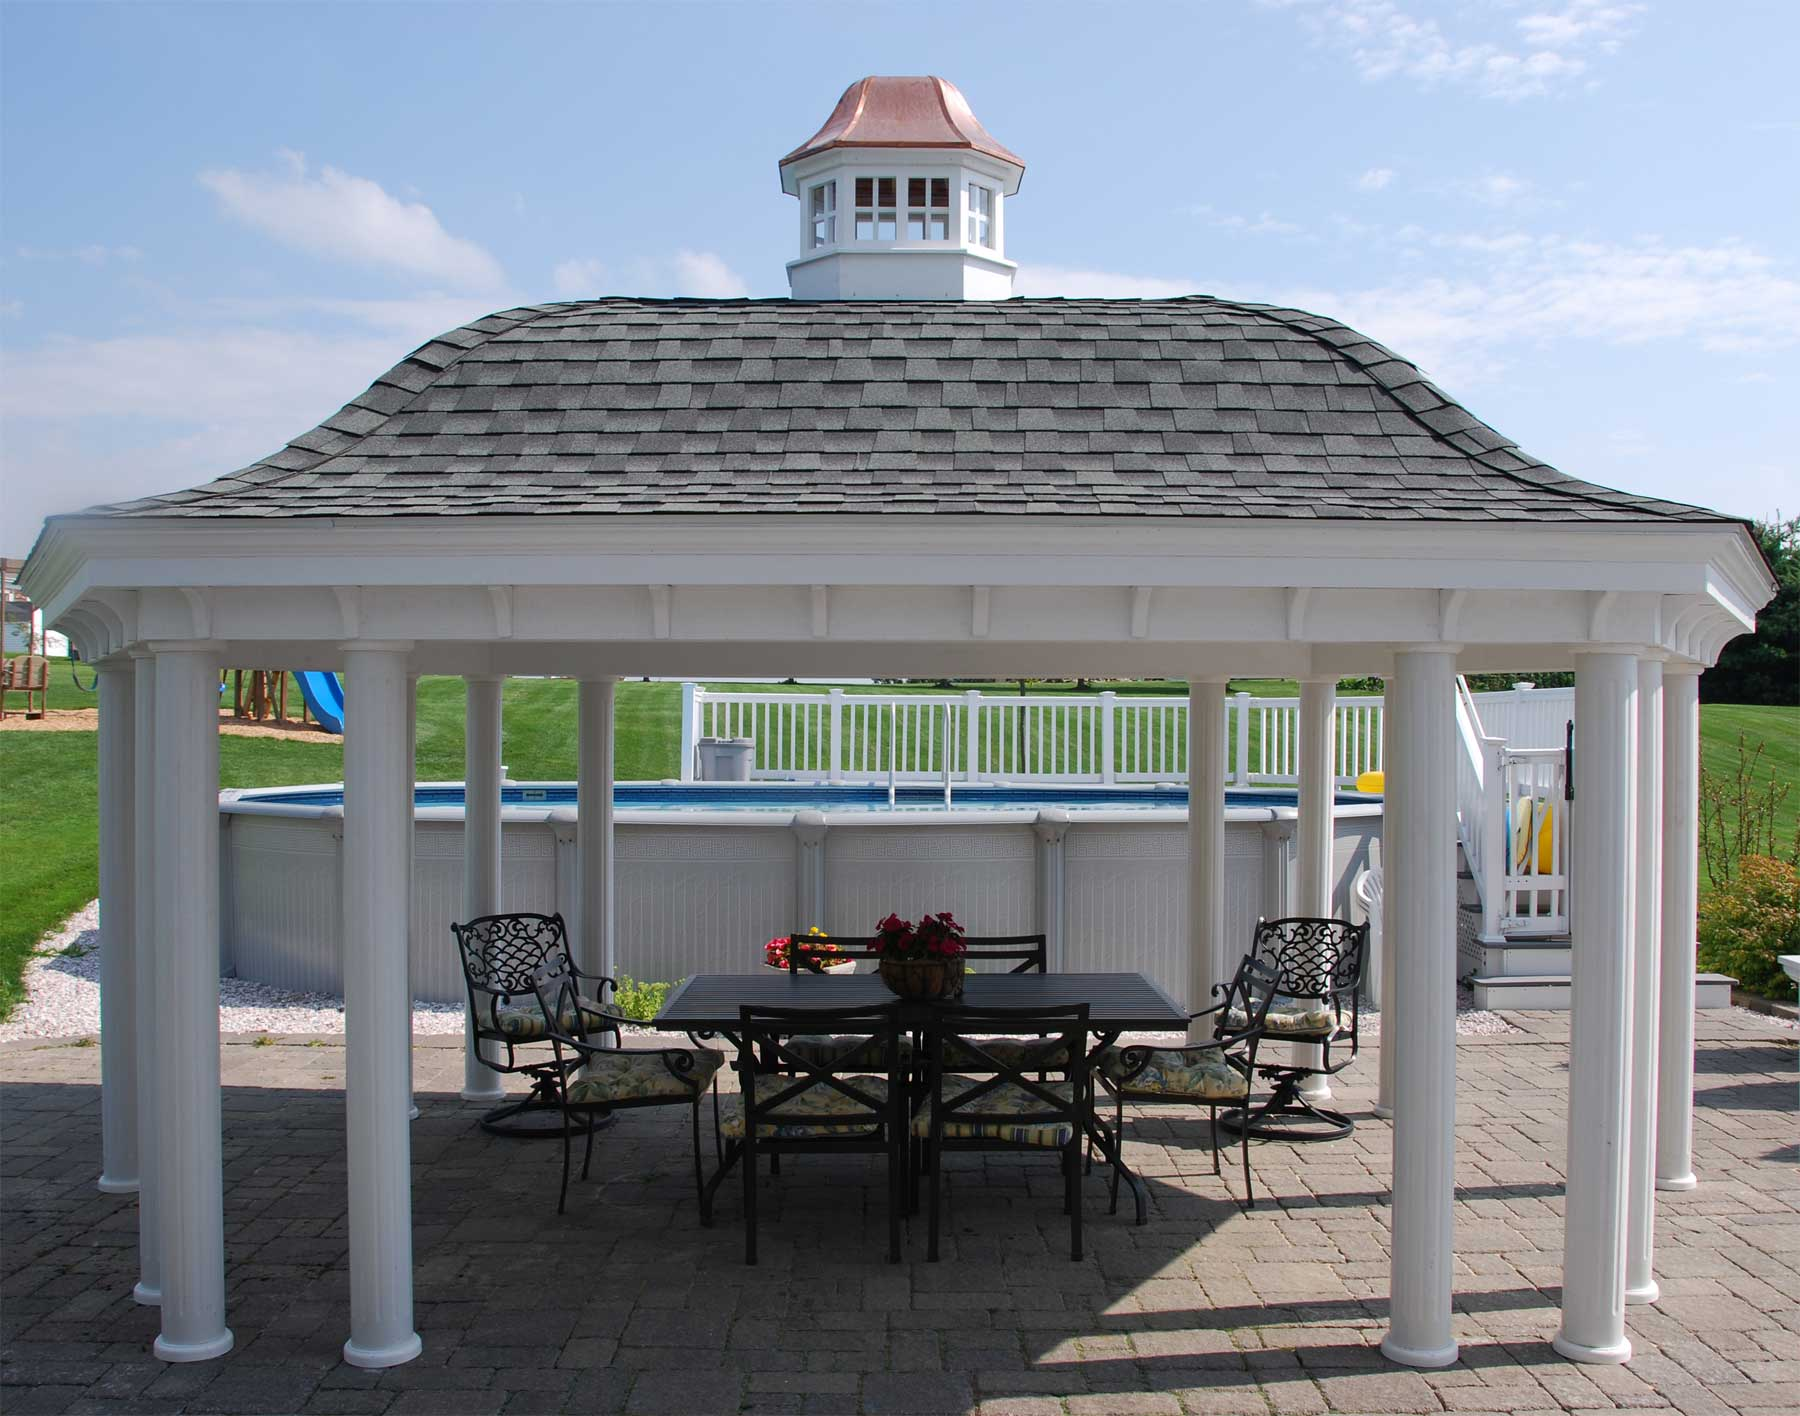 Vinyl belle roof elongated hexagon gazebos gazebos by for Cupola designs